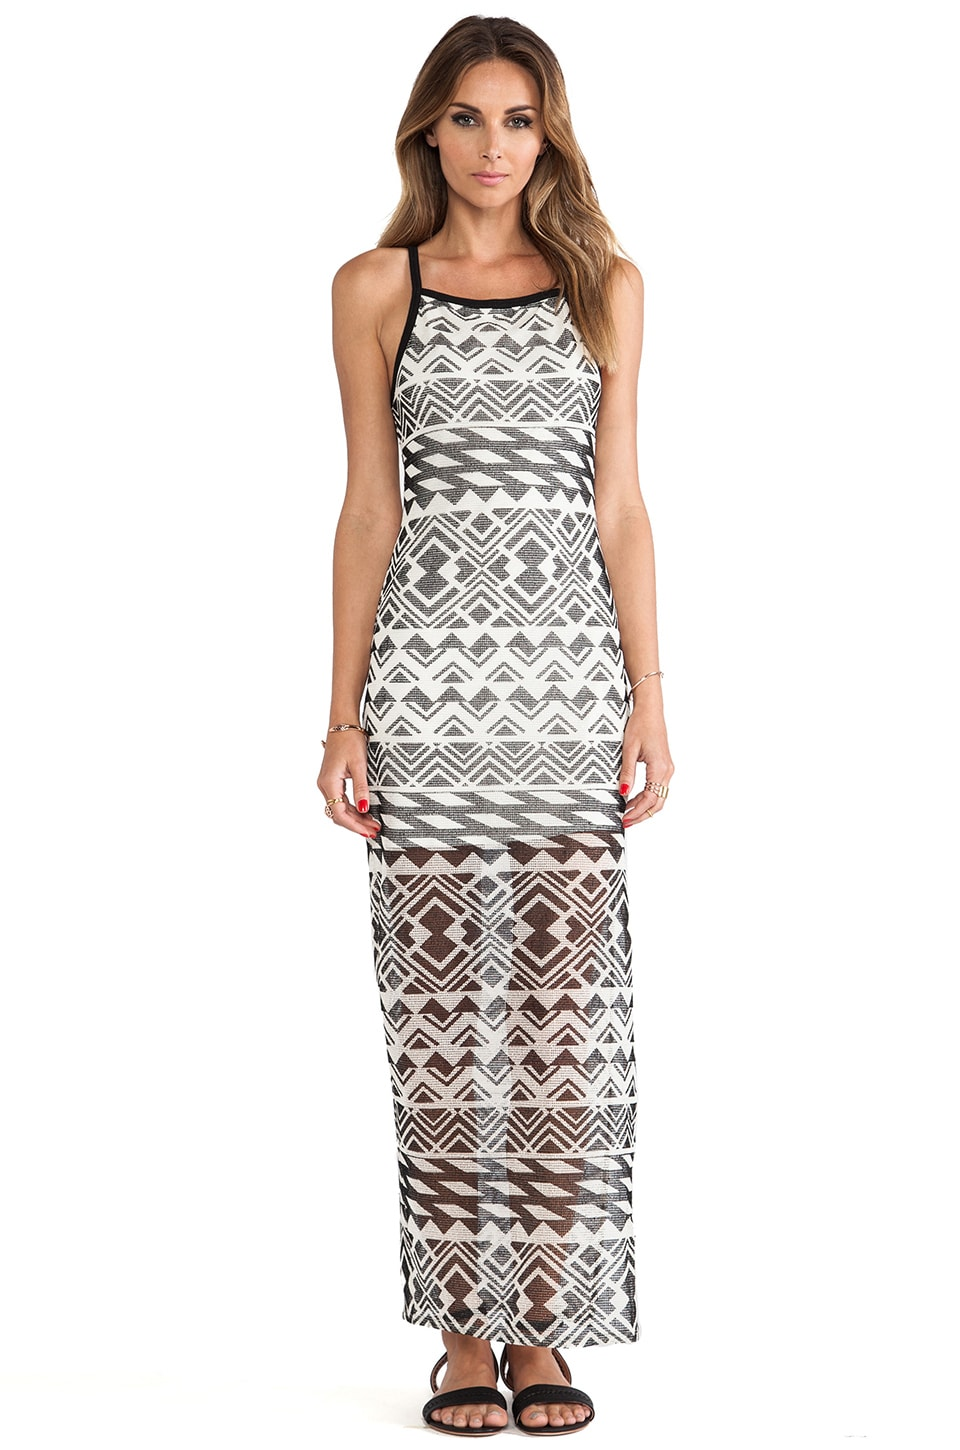 Dolce Vita Borna Dress in Black Print